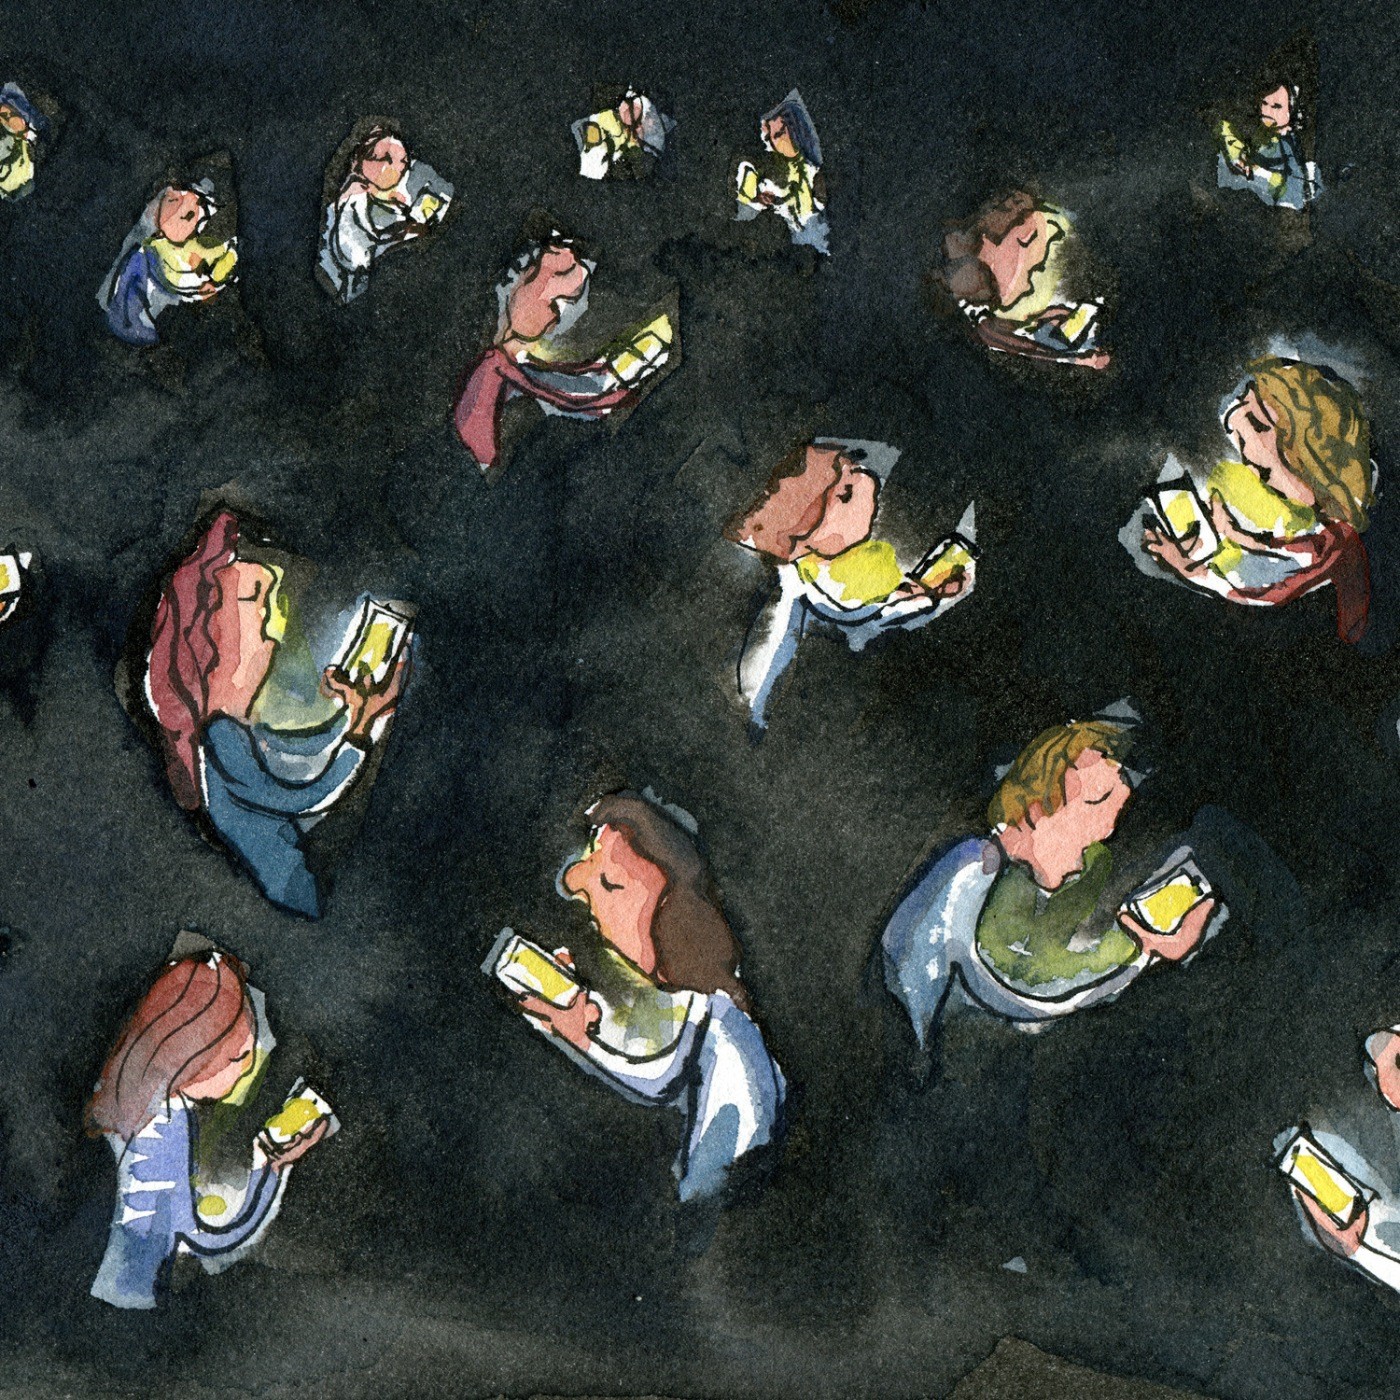 Group of people in dark with phones lightning up their faces. illustration by Frits Ahlefeldt